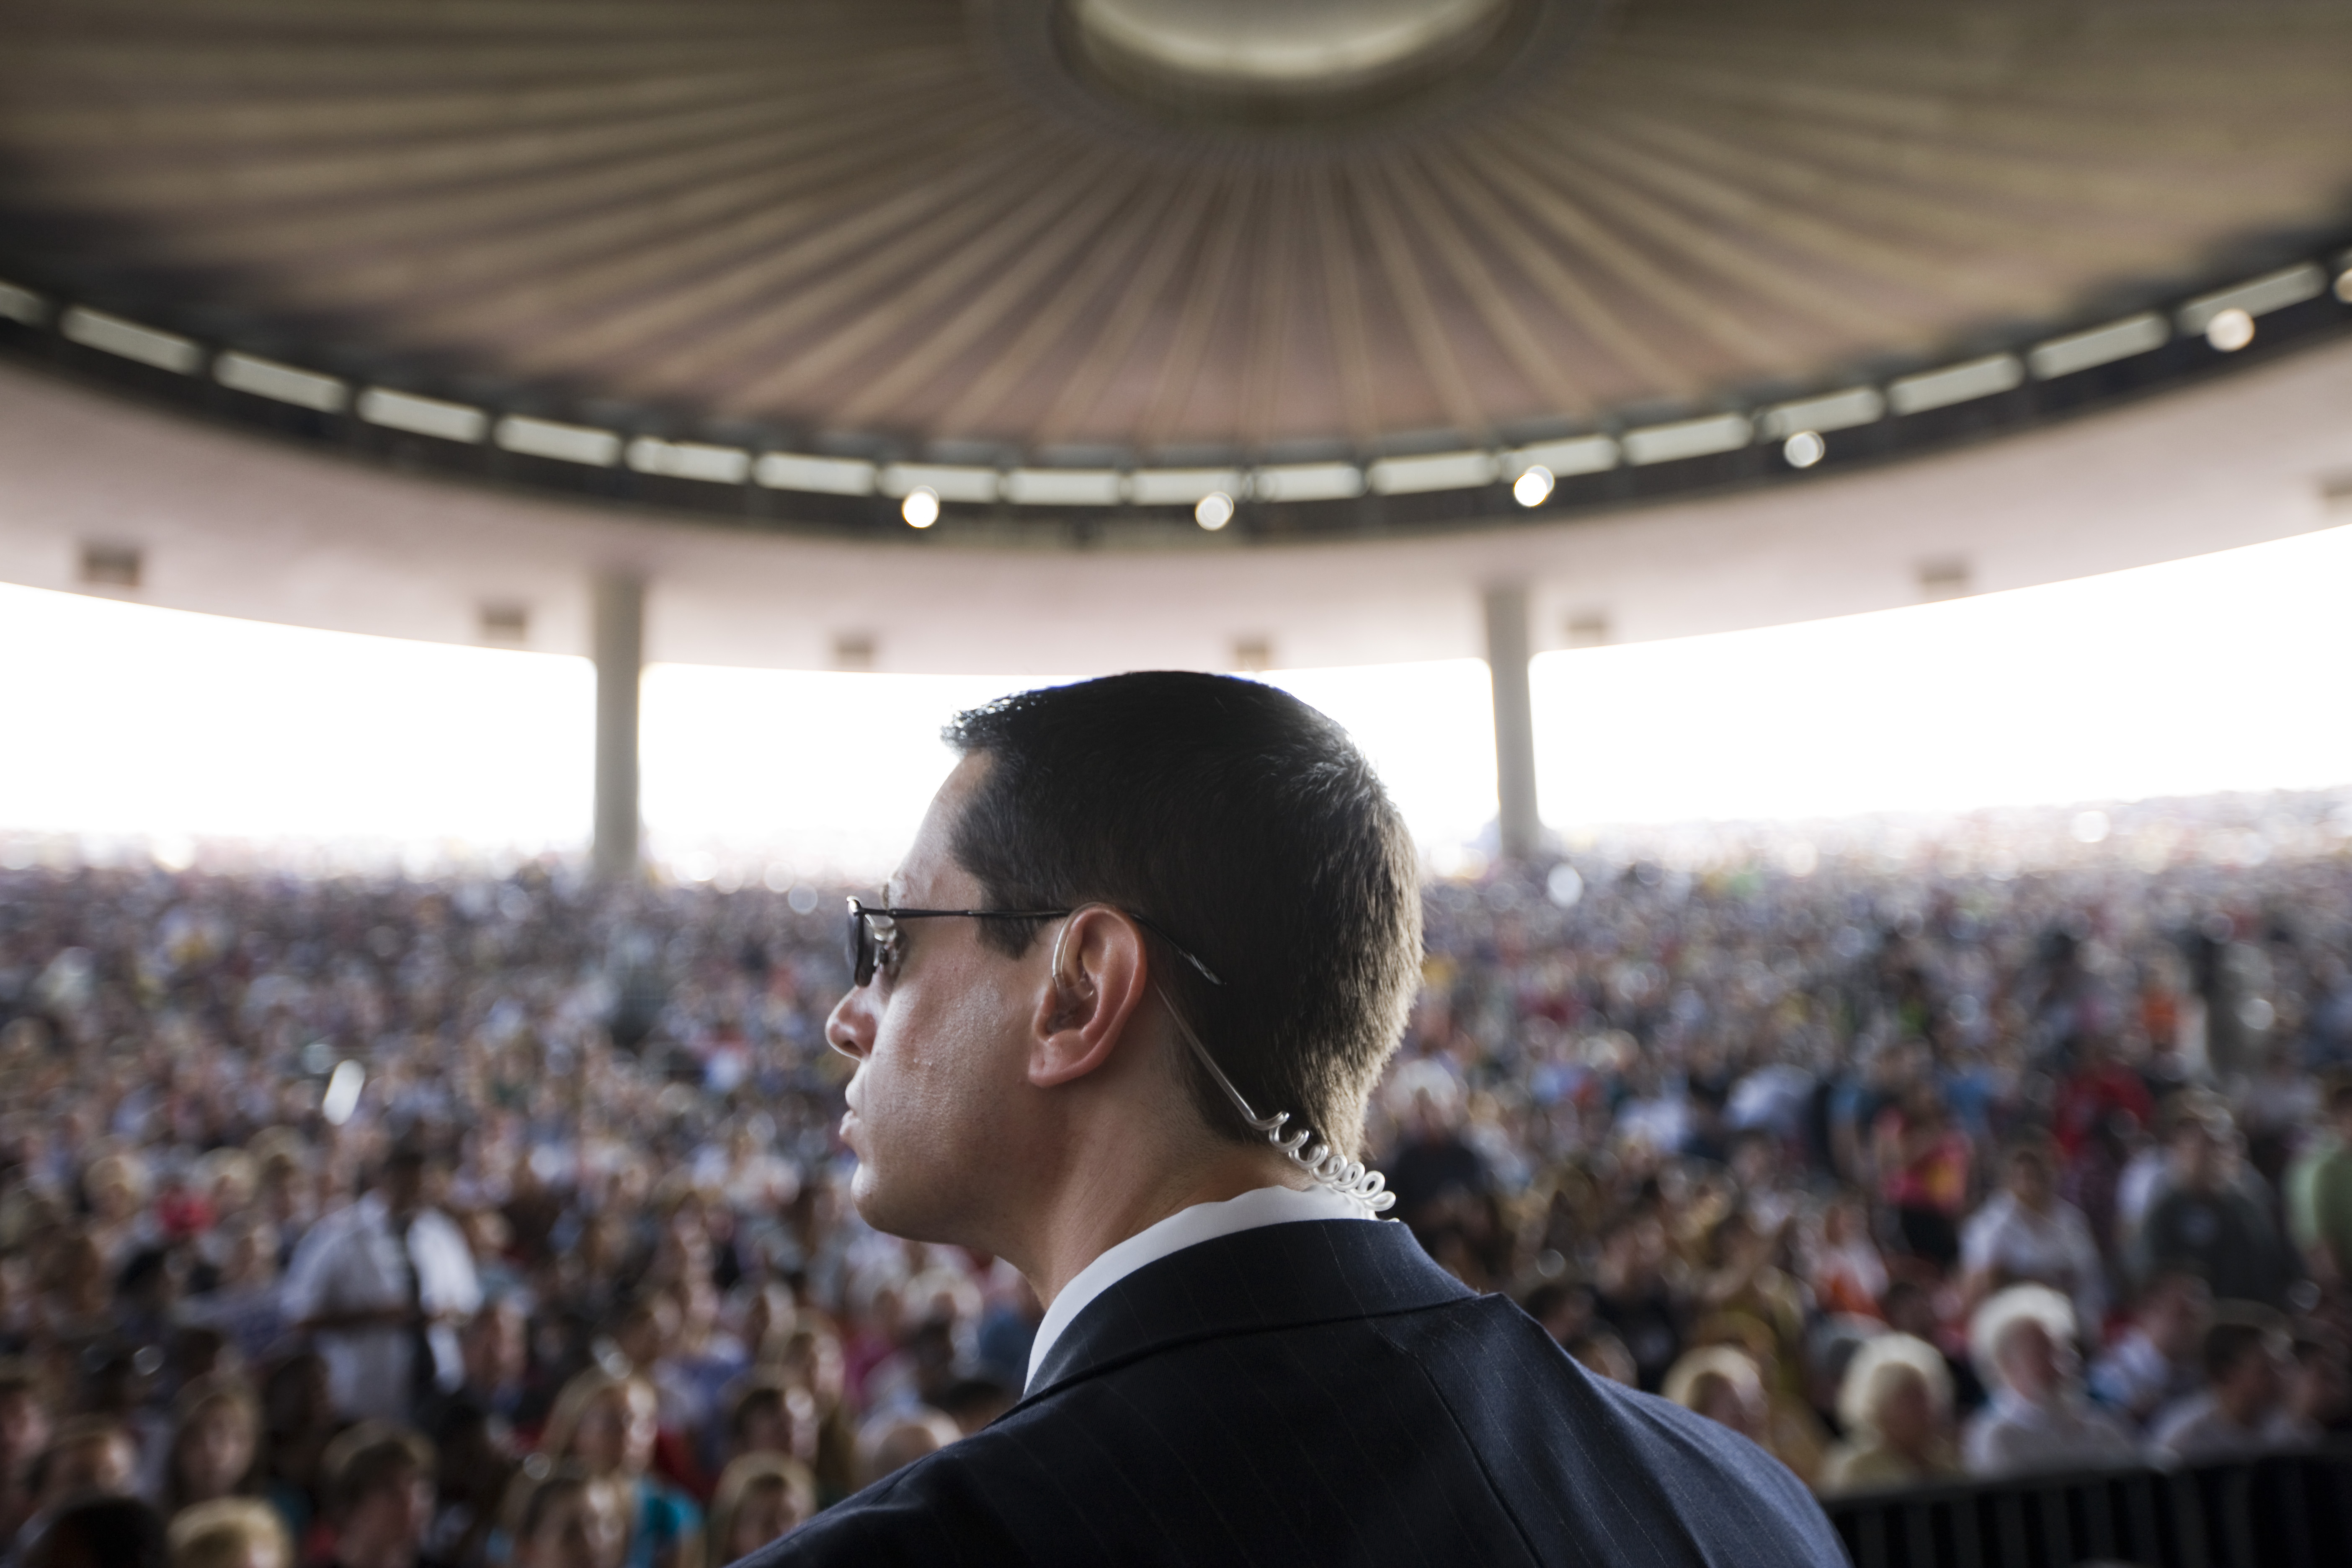 A Secret Service agent watches the crowd as President Barrack Obama speaks in Holmdel, N.J. on July 16, 2009.